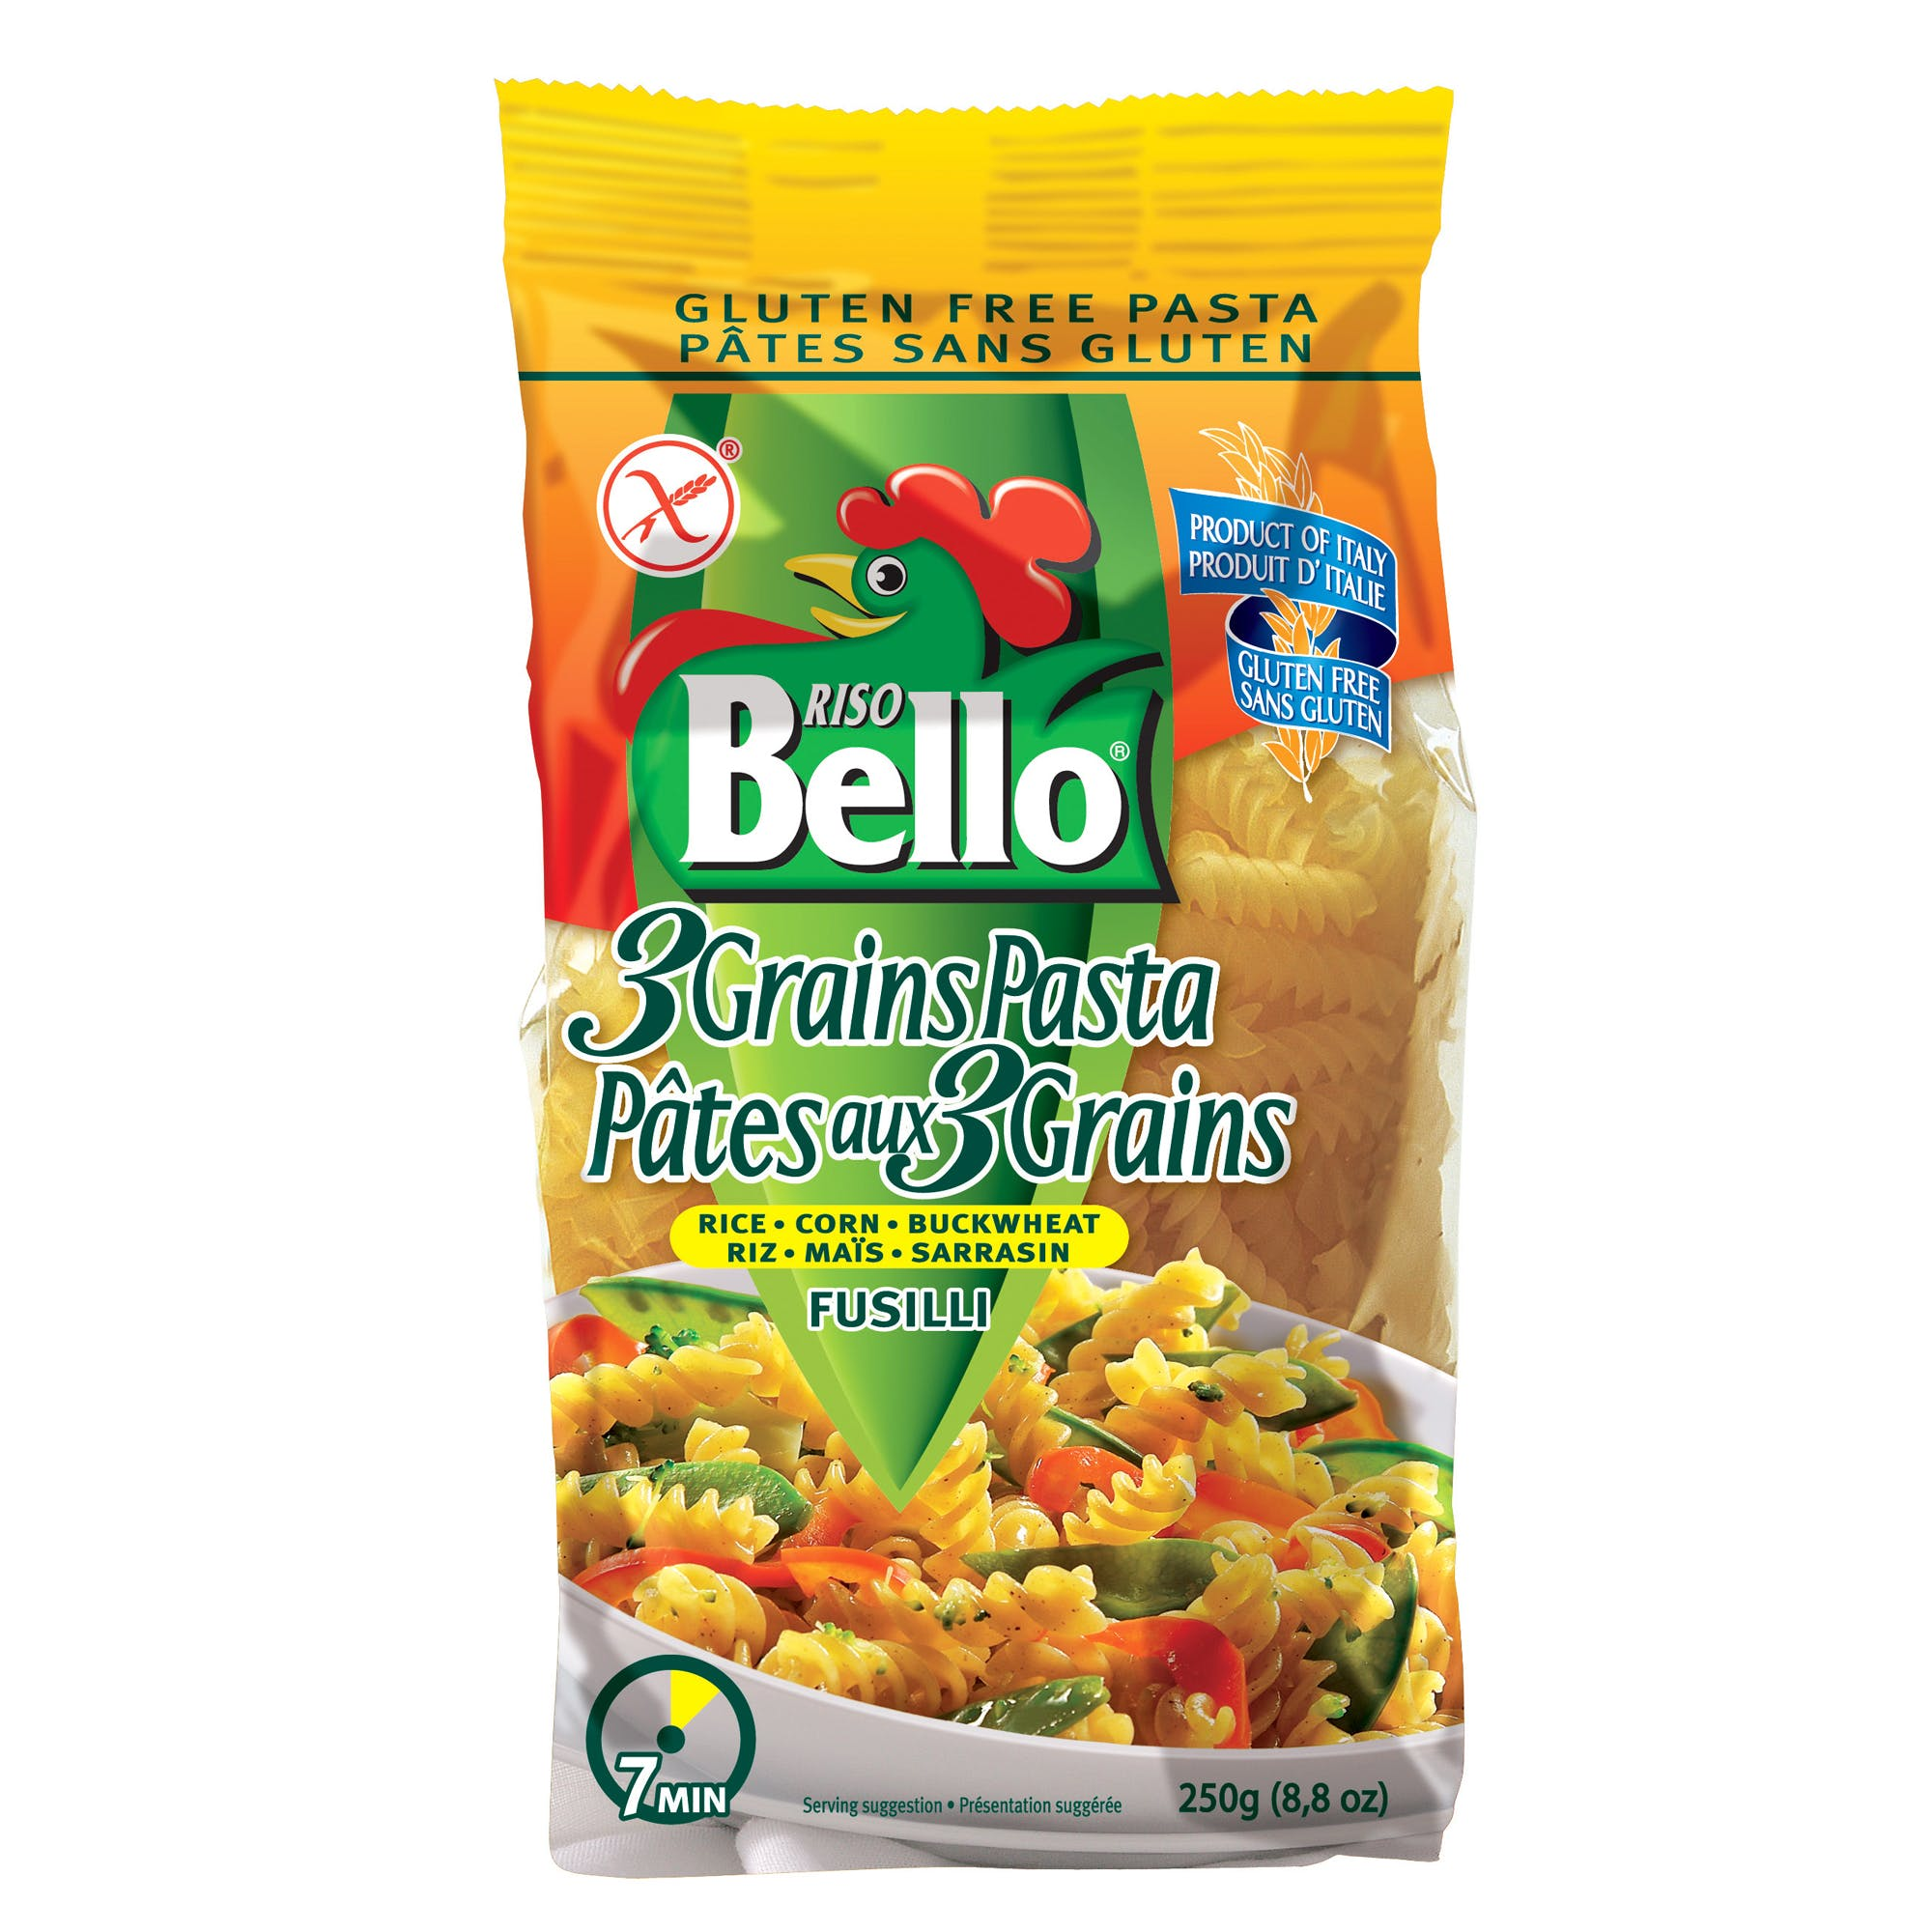 Gluten Free 3 Grain Fusilli Pasta sold by M5 Corporation